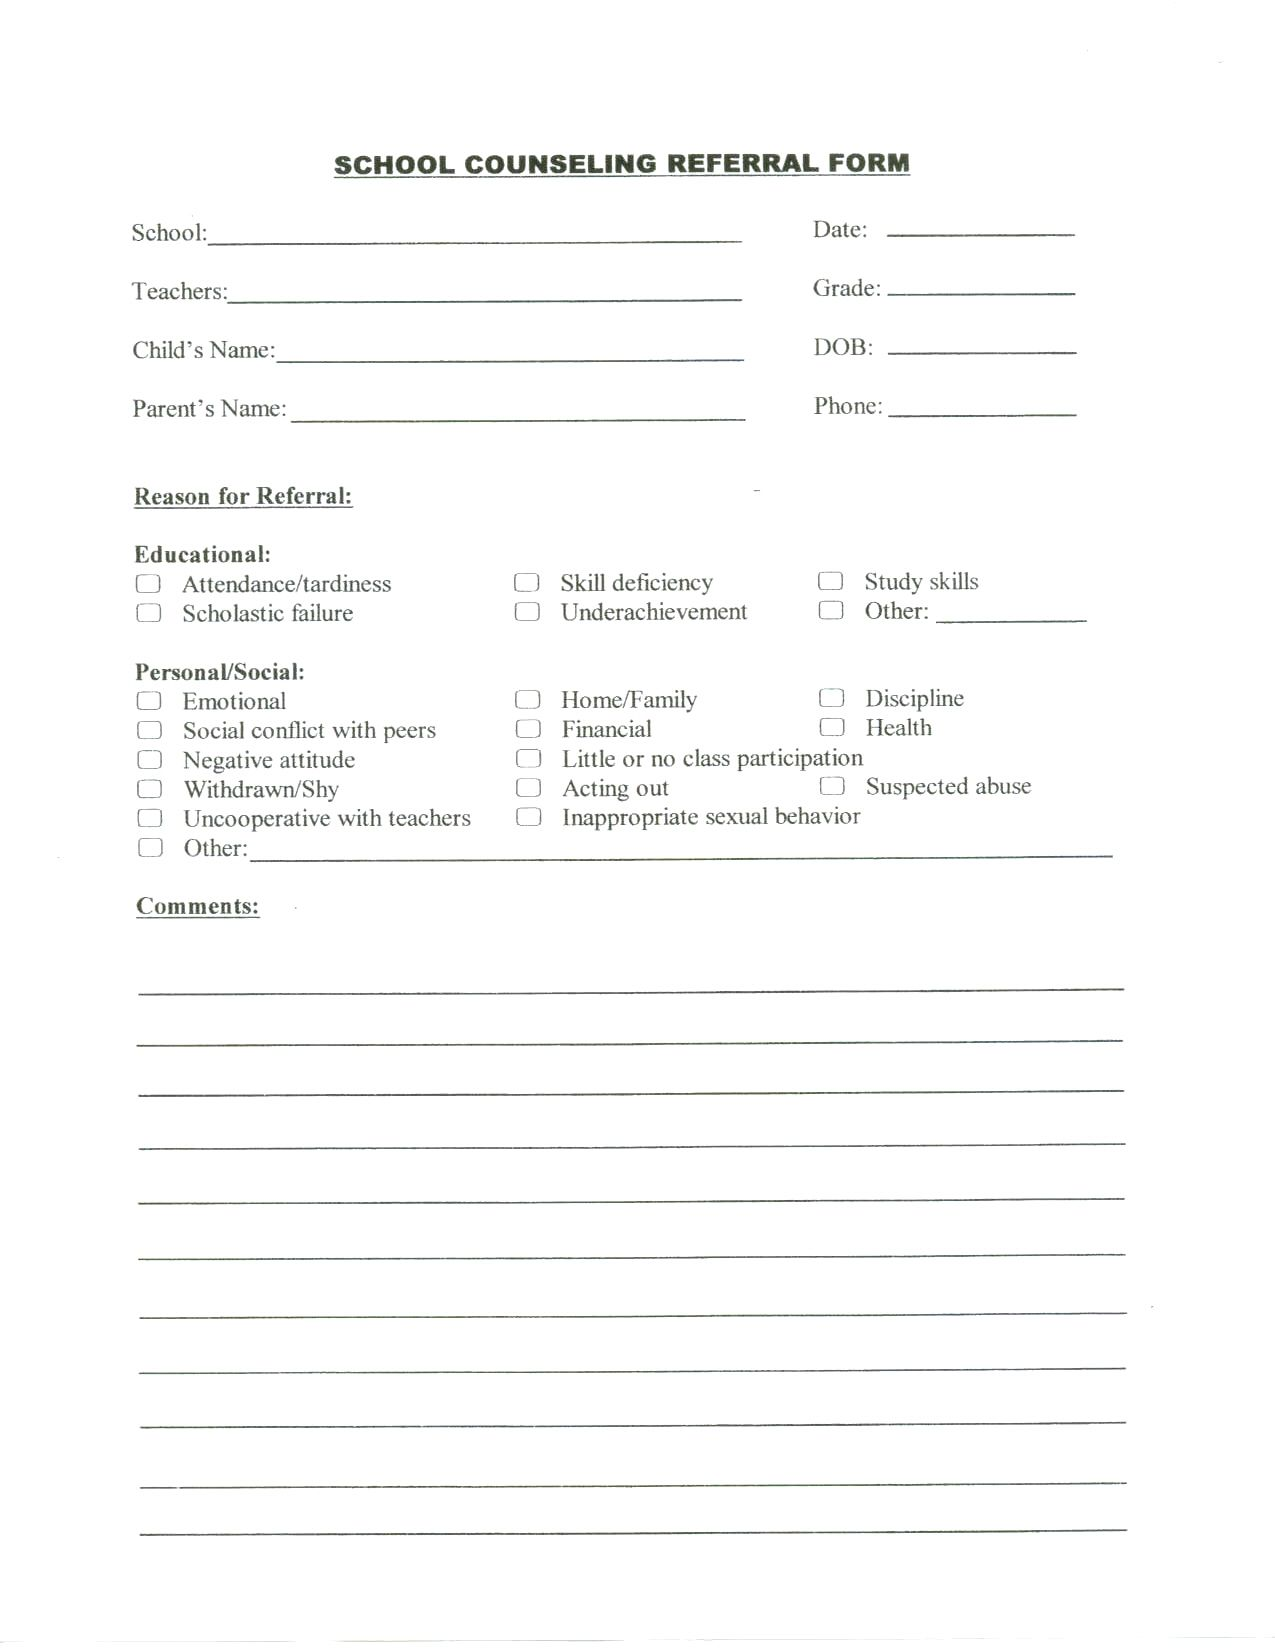 School Counselor Log School Counseling Referral Form School